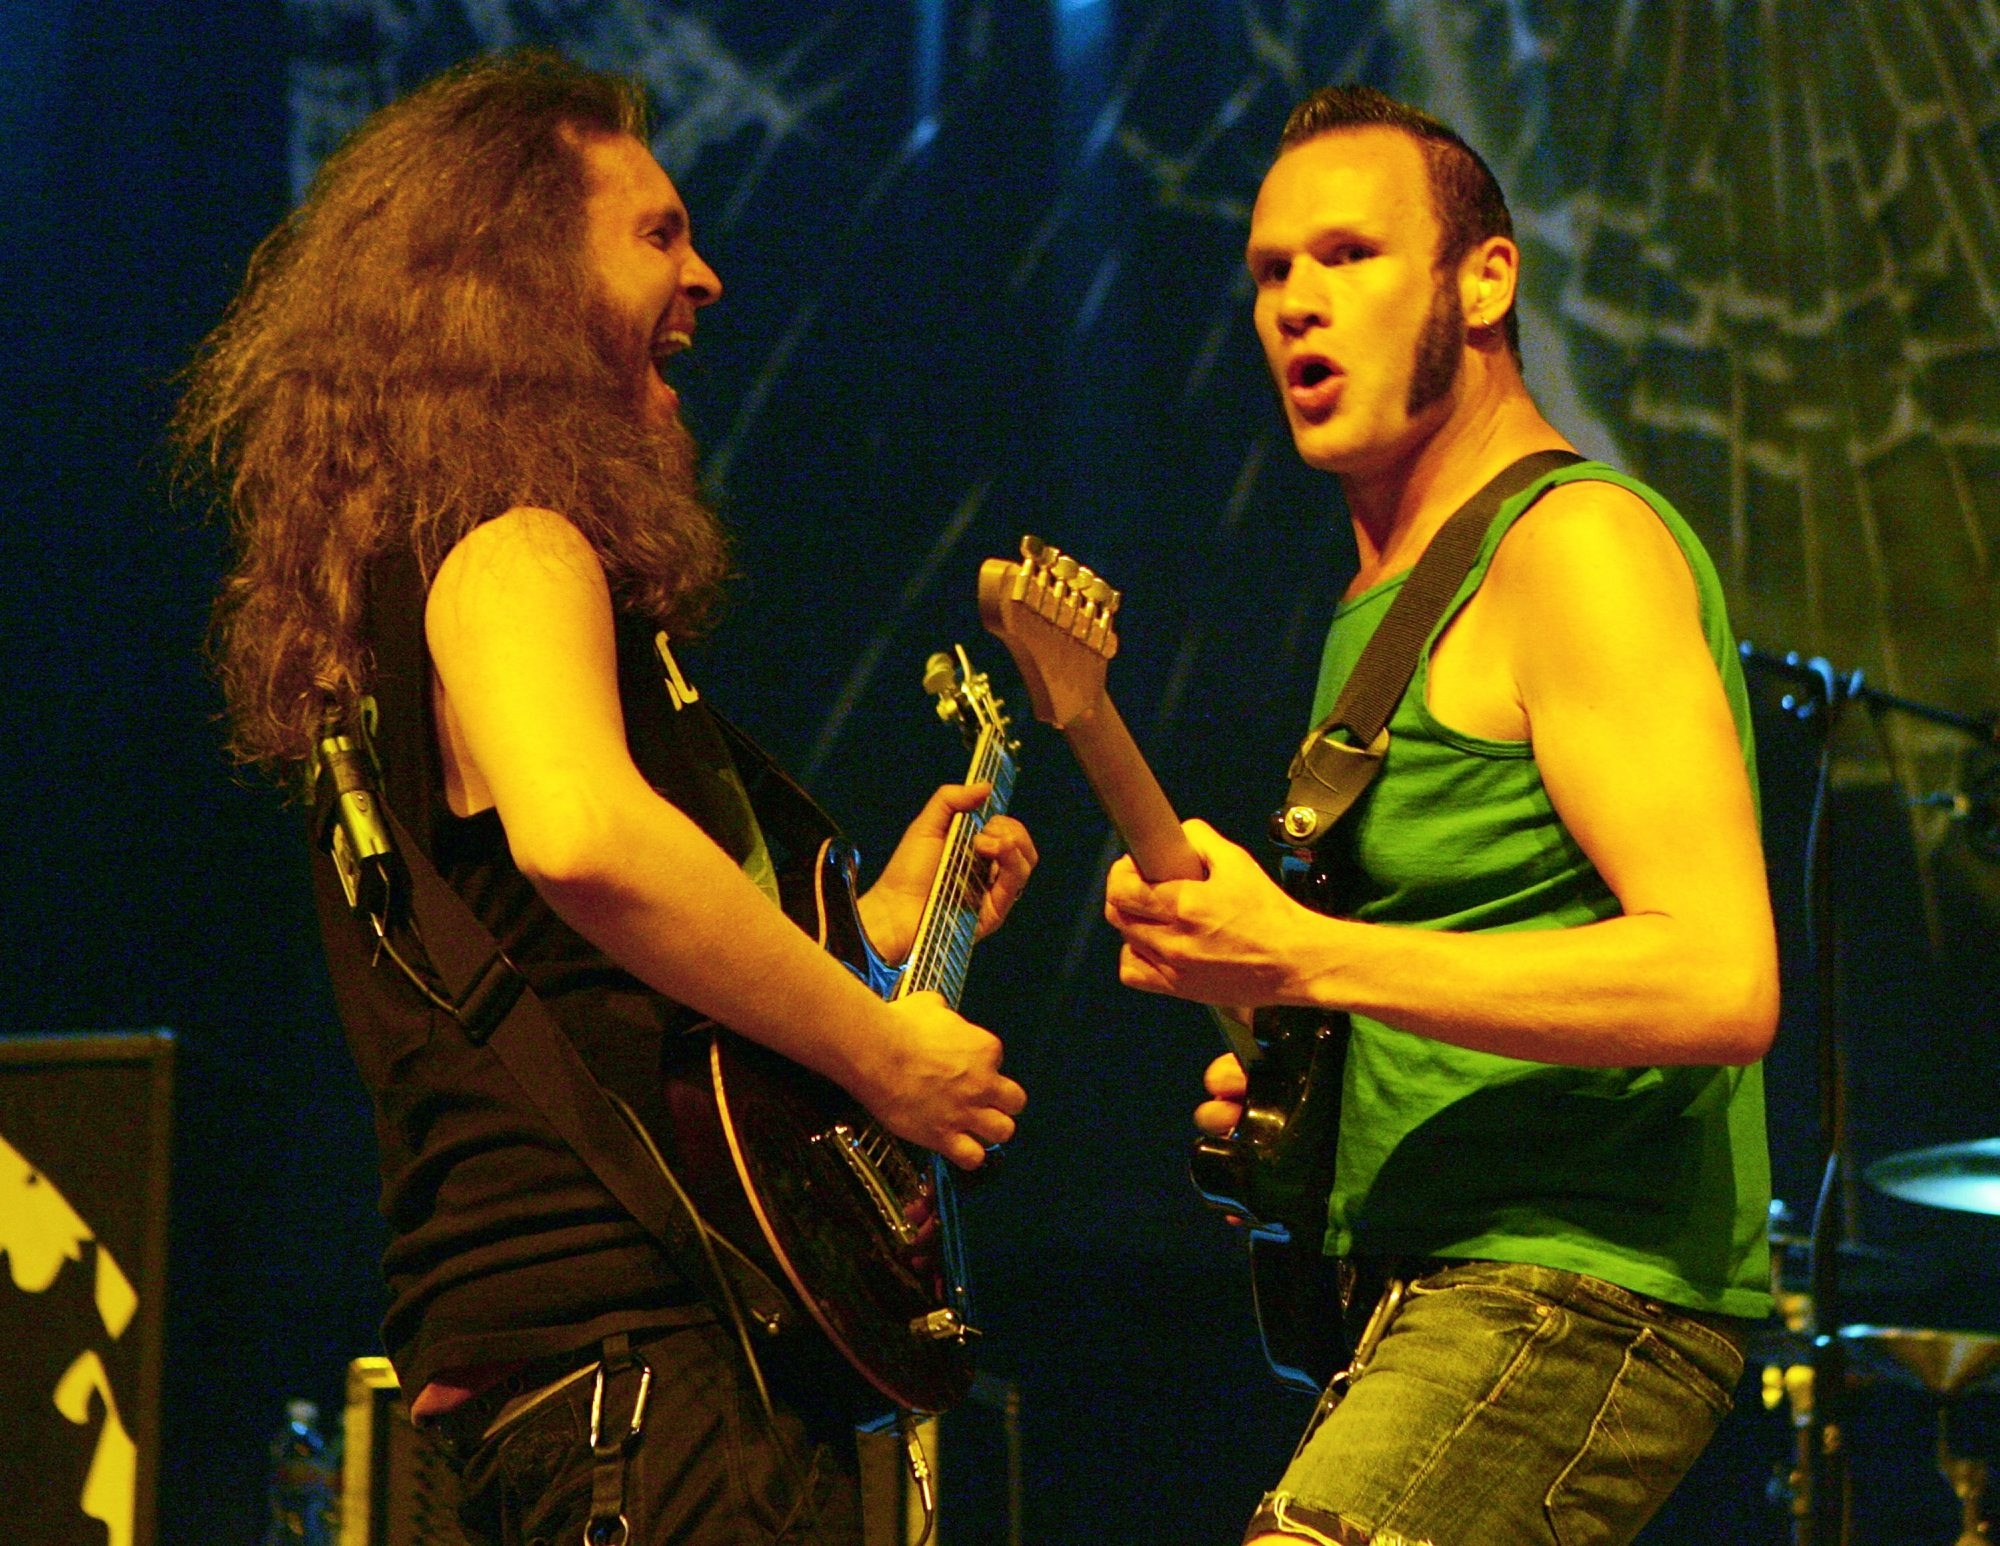 Killswitch Engage – with guitarists Joel Stroetzel, left, and Adam Dutkiewicz – will play Town Ballroom on April 17. (Getty Images)